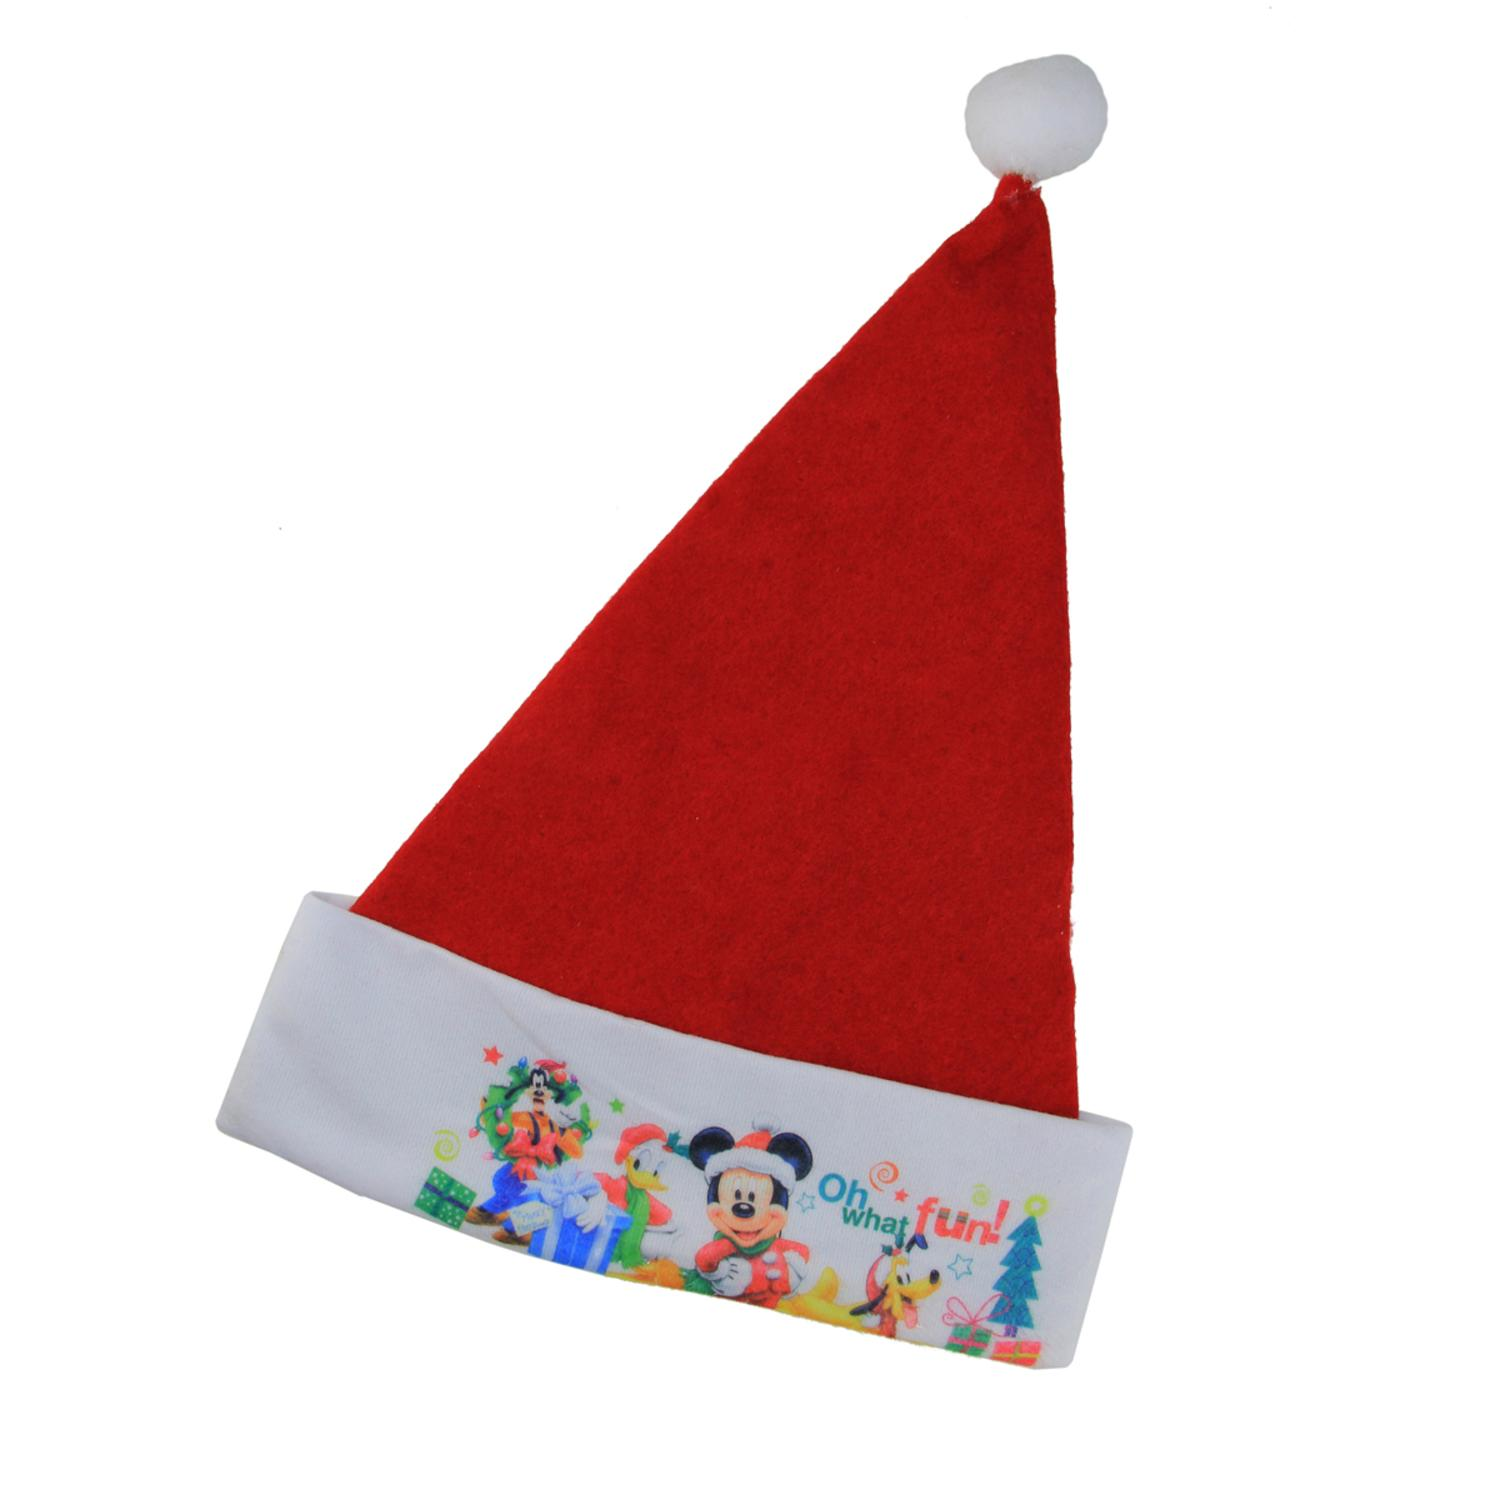 """17.5"""" Disney Mickey Mouse """"Oh What Fun!"""" Red Christmas Santa Hat with White Trim"""